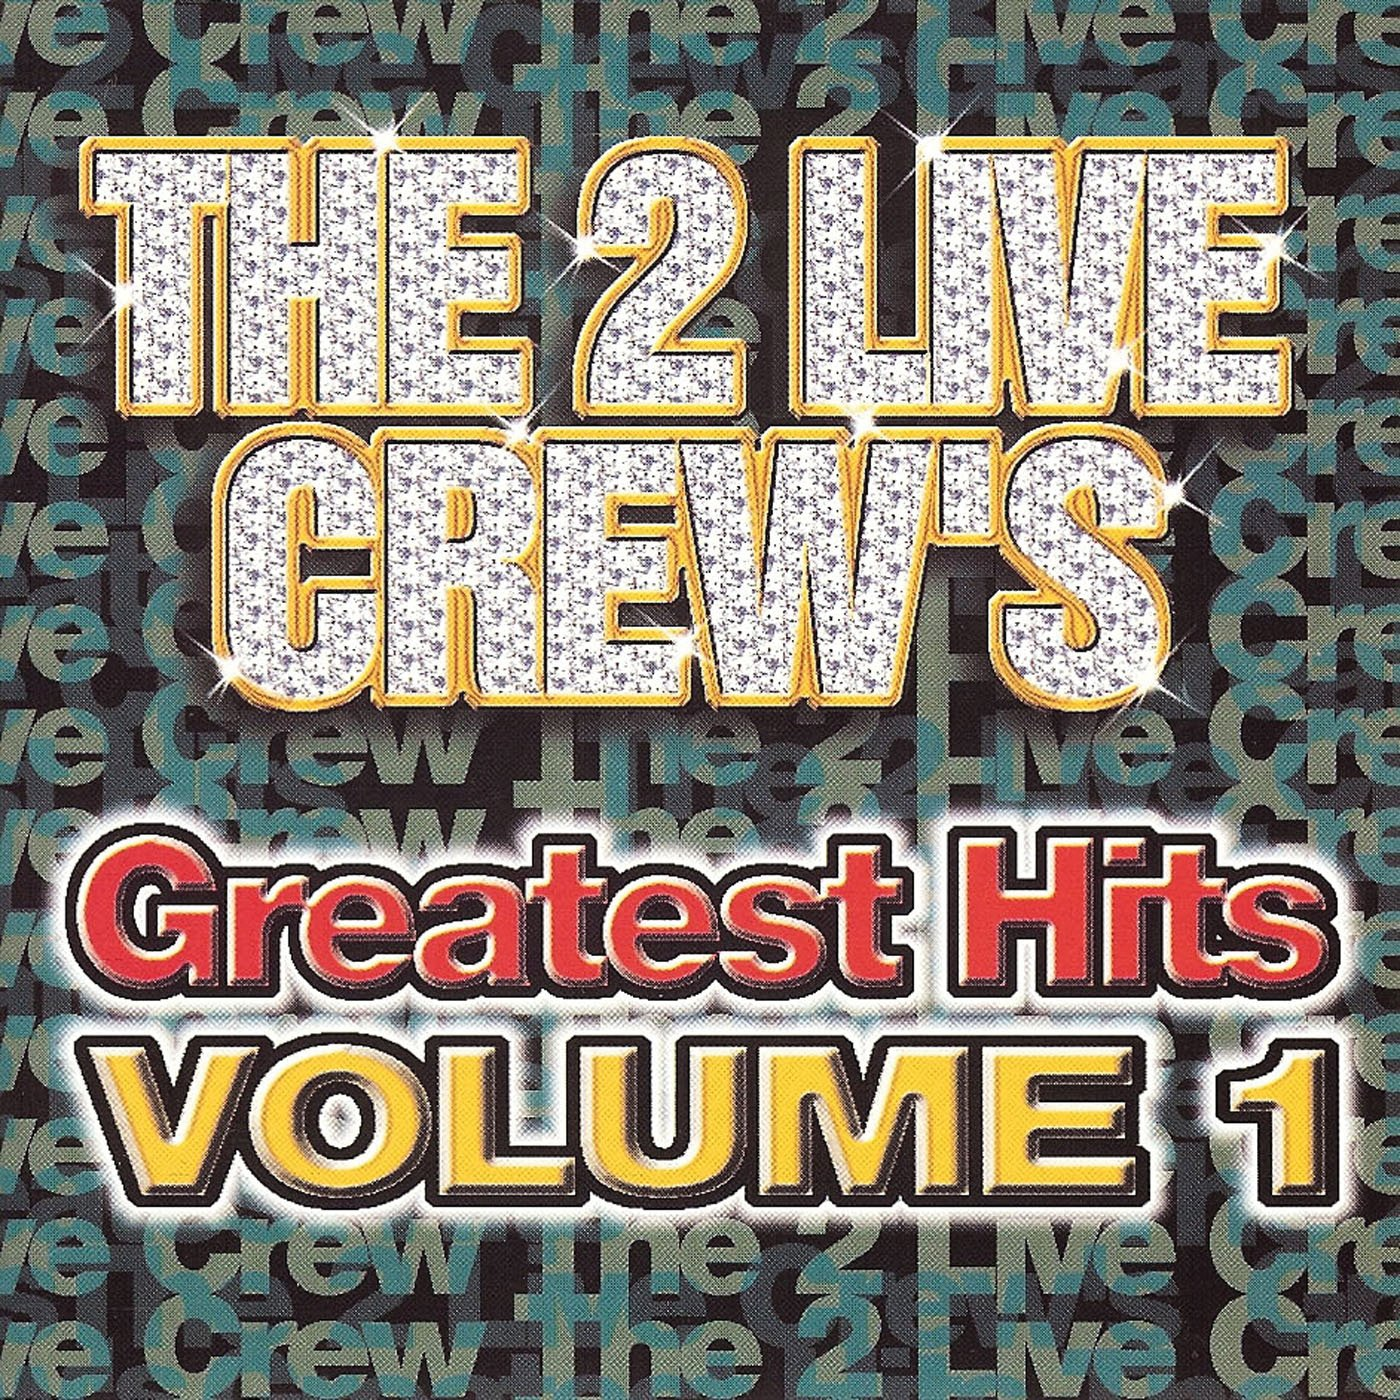 Greatest Hits Volume 1 (clean)